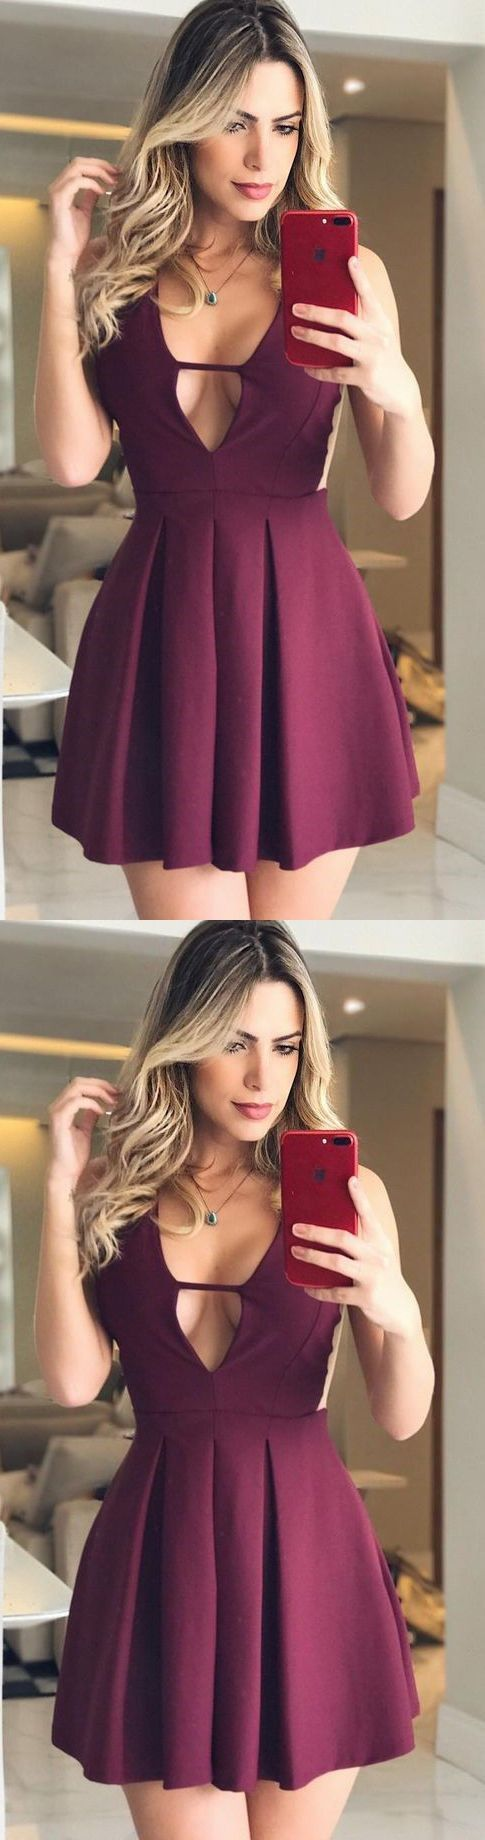 Short Burgundy Homecoming Dress with Ruched, Short V-Neck Prom Dress, Simple Party Dress for Girls #homecomingdresses